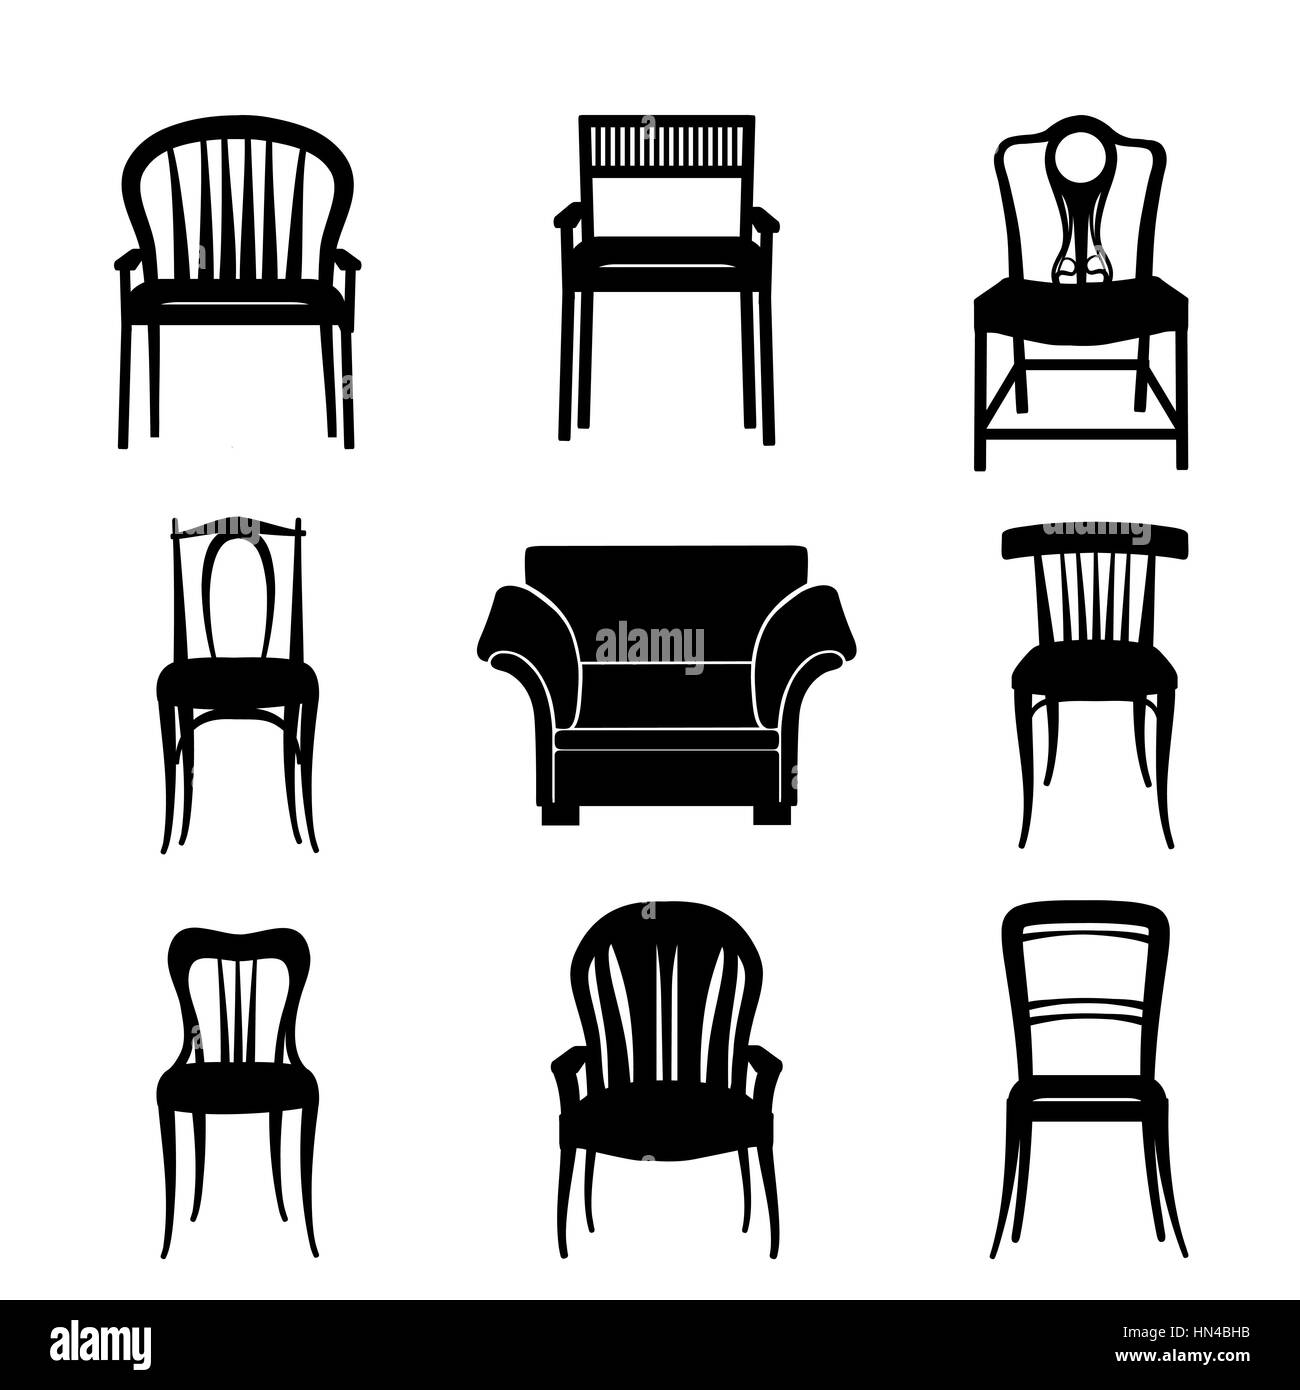 Sessel Vektor Sitting Chair Stock Vector Images Alamy